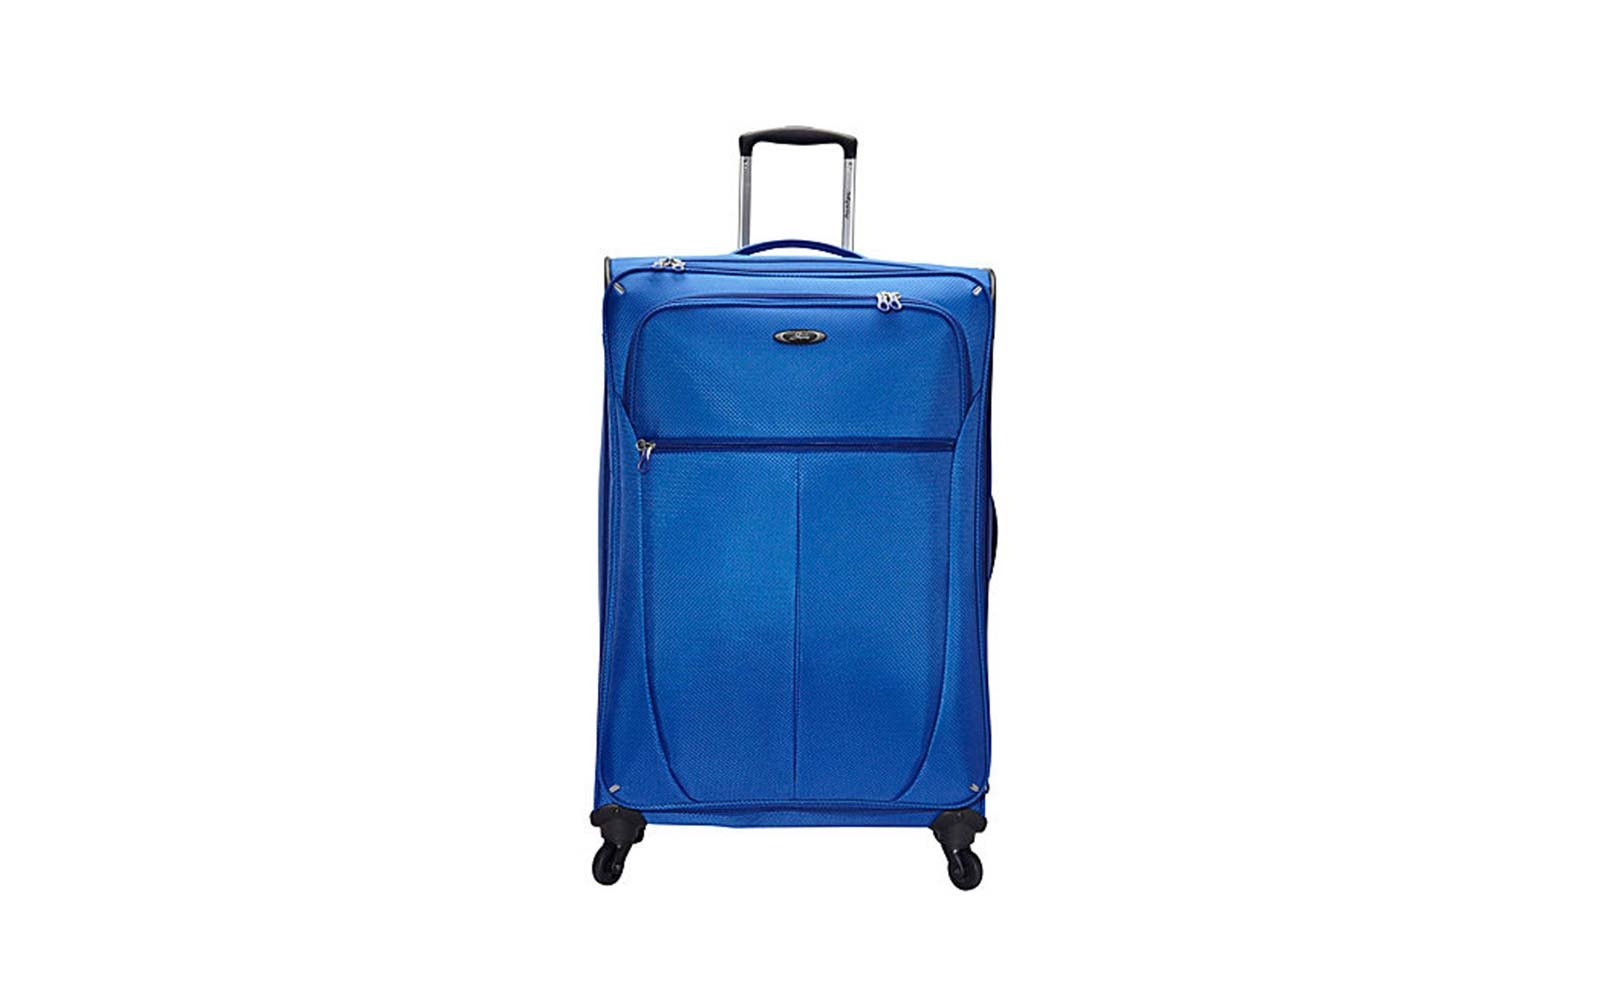 Skyway Mirage Superlight Expandable Upright Luggage